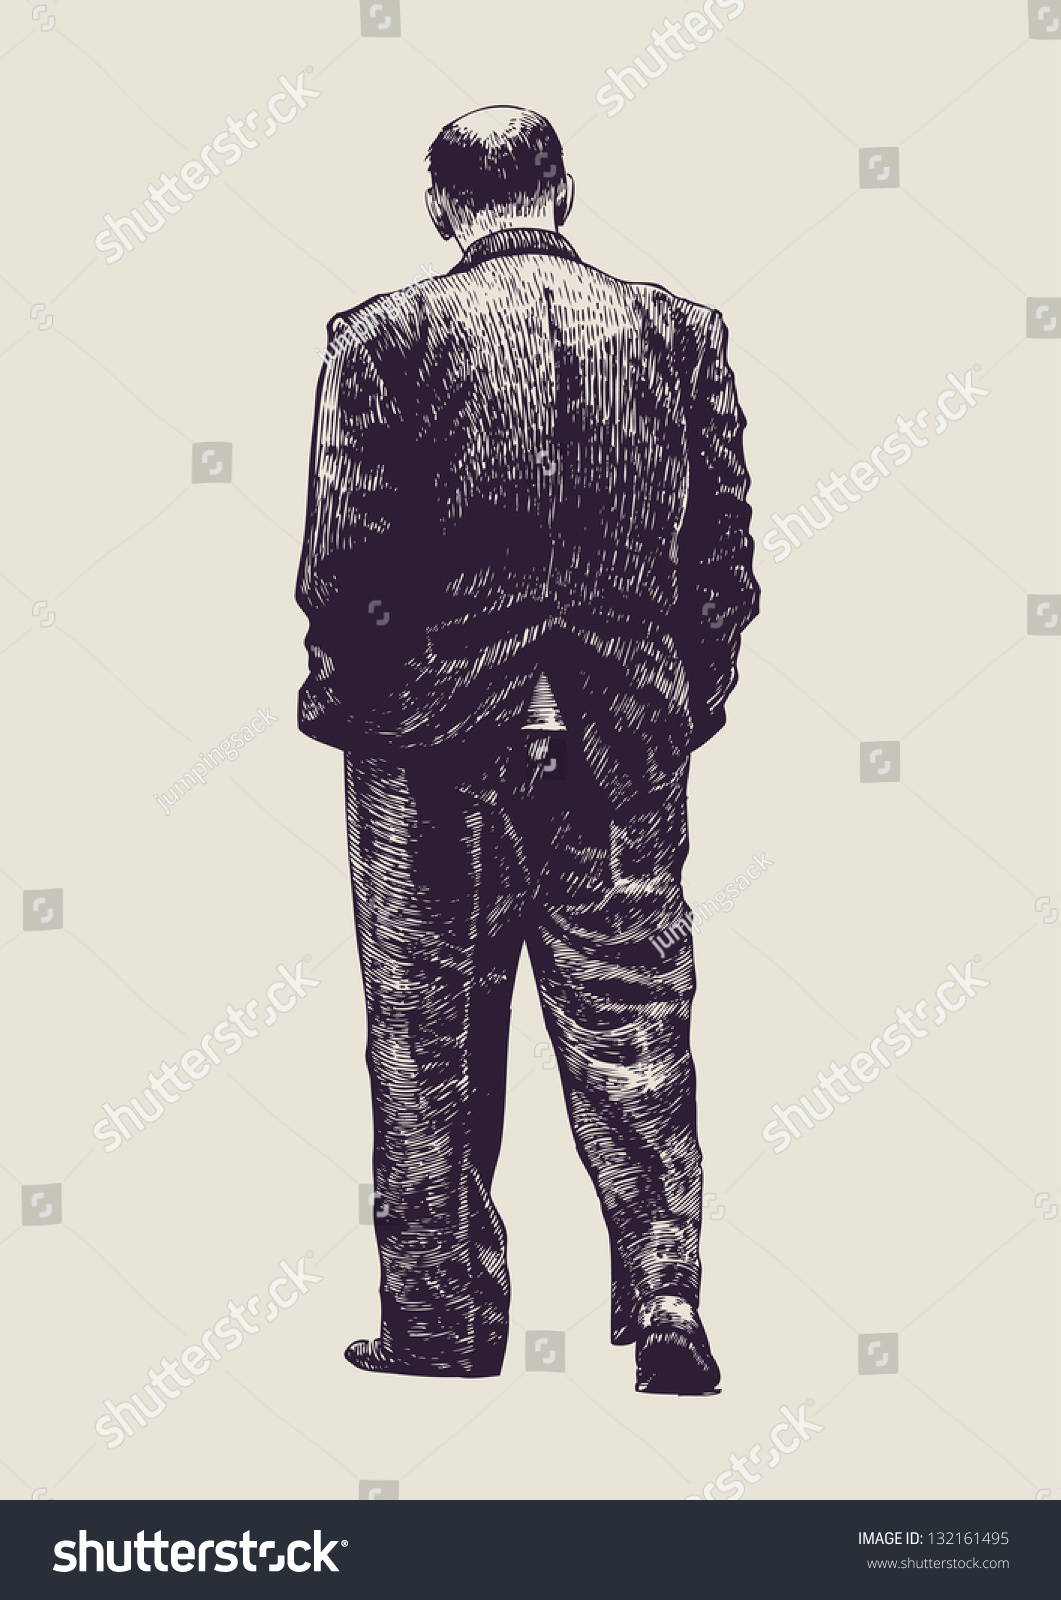 Bald Headed Elderly Man Back View Stock Vector 132161495 ...